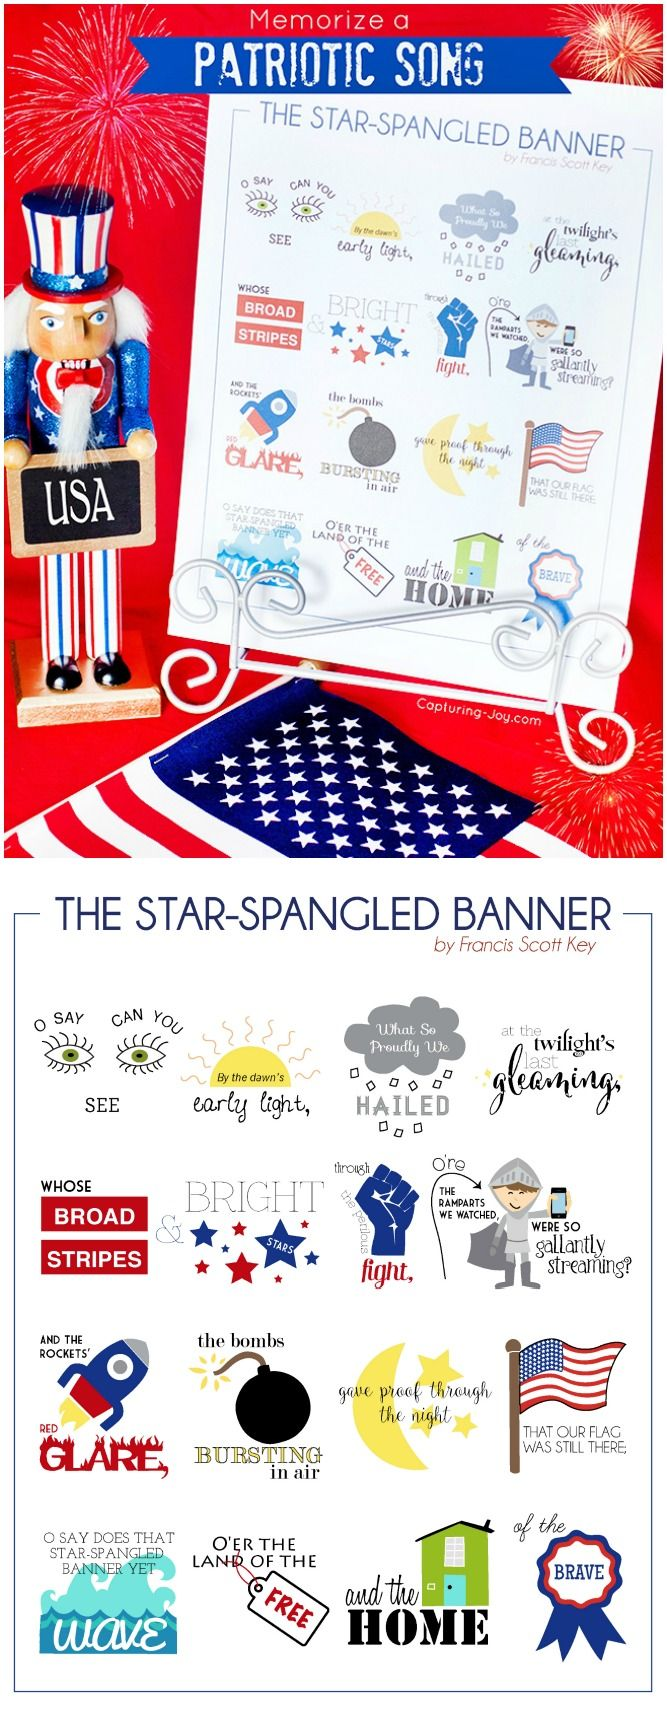 Help your family memorize the patriotic song The star-spangled banner for July 4th with this free printable. Great family activity and summer boredom buster.